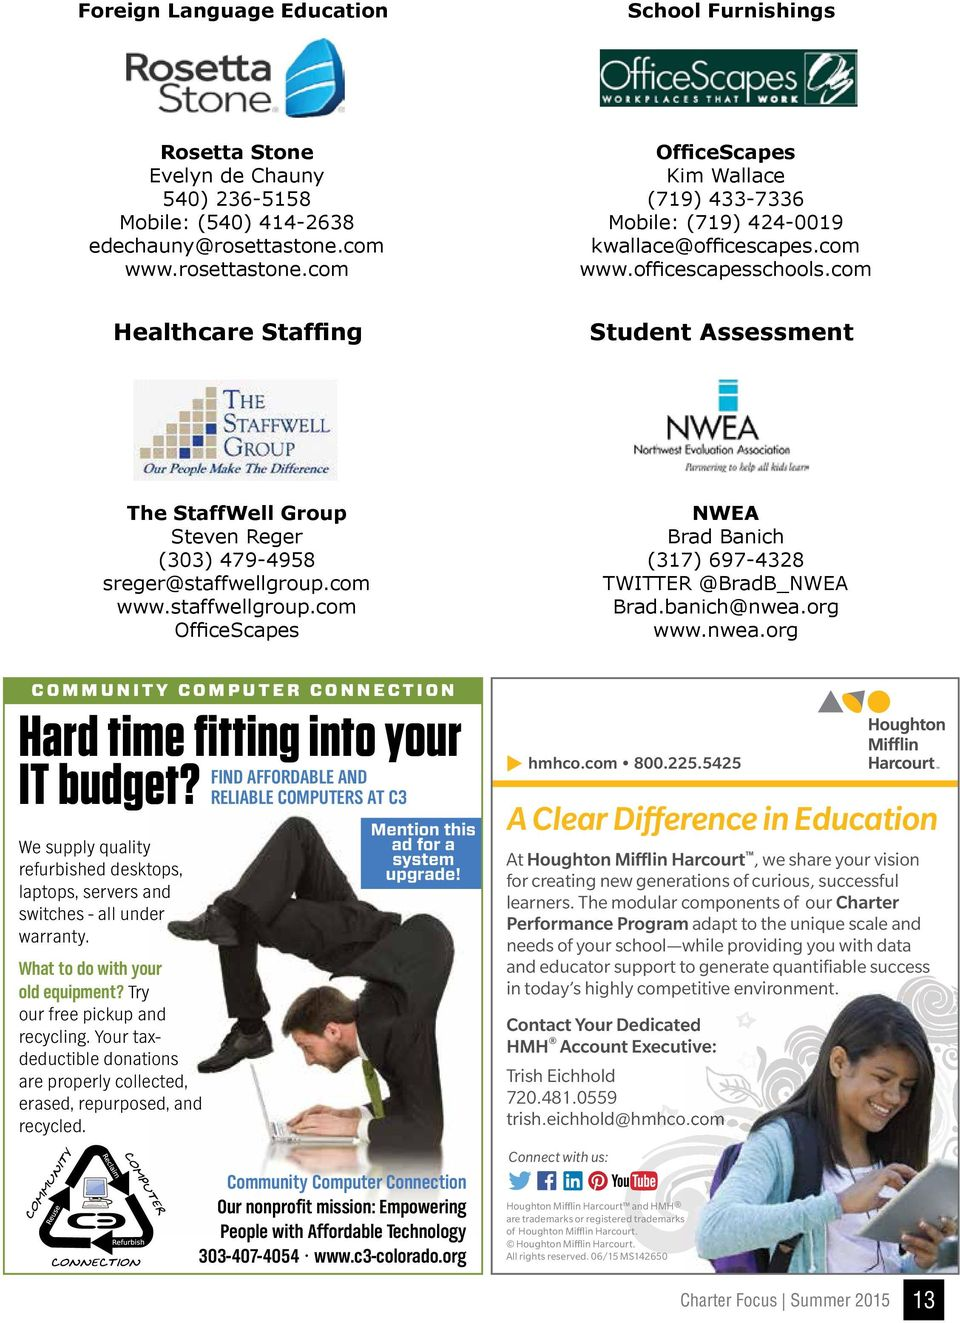 com Healthcare Staffing Student Assessment The StaffWell Group Steven Reger (303) 479-4958 sreger@staffwellgroup.com www.staffwellgroup.com OfficeScapes NWEA Brad Banich (317) 697-4328 TWITTER @BradB_NWEA Brad.